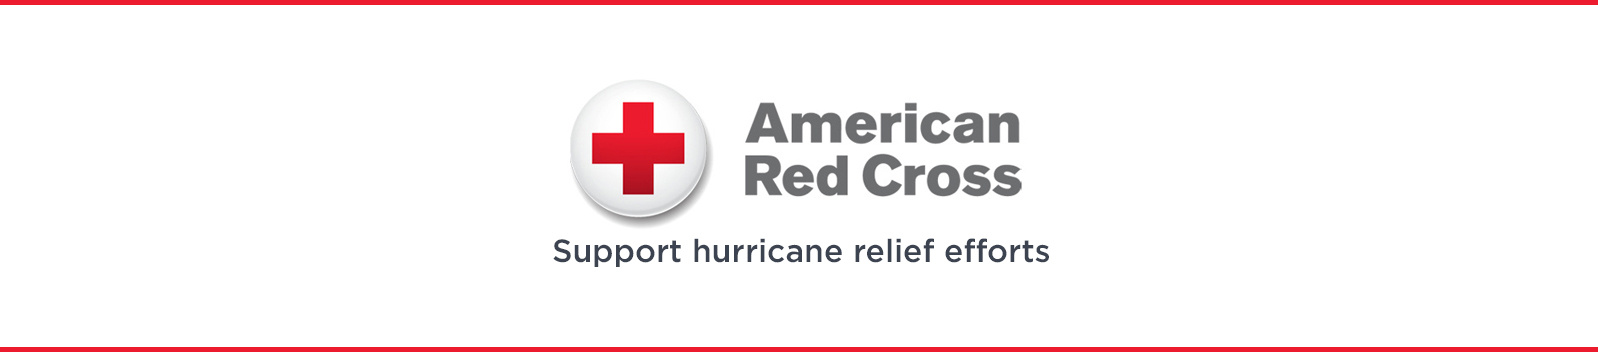 American Red Cross — Support hurricane relief efforts